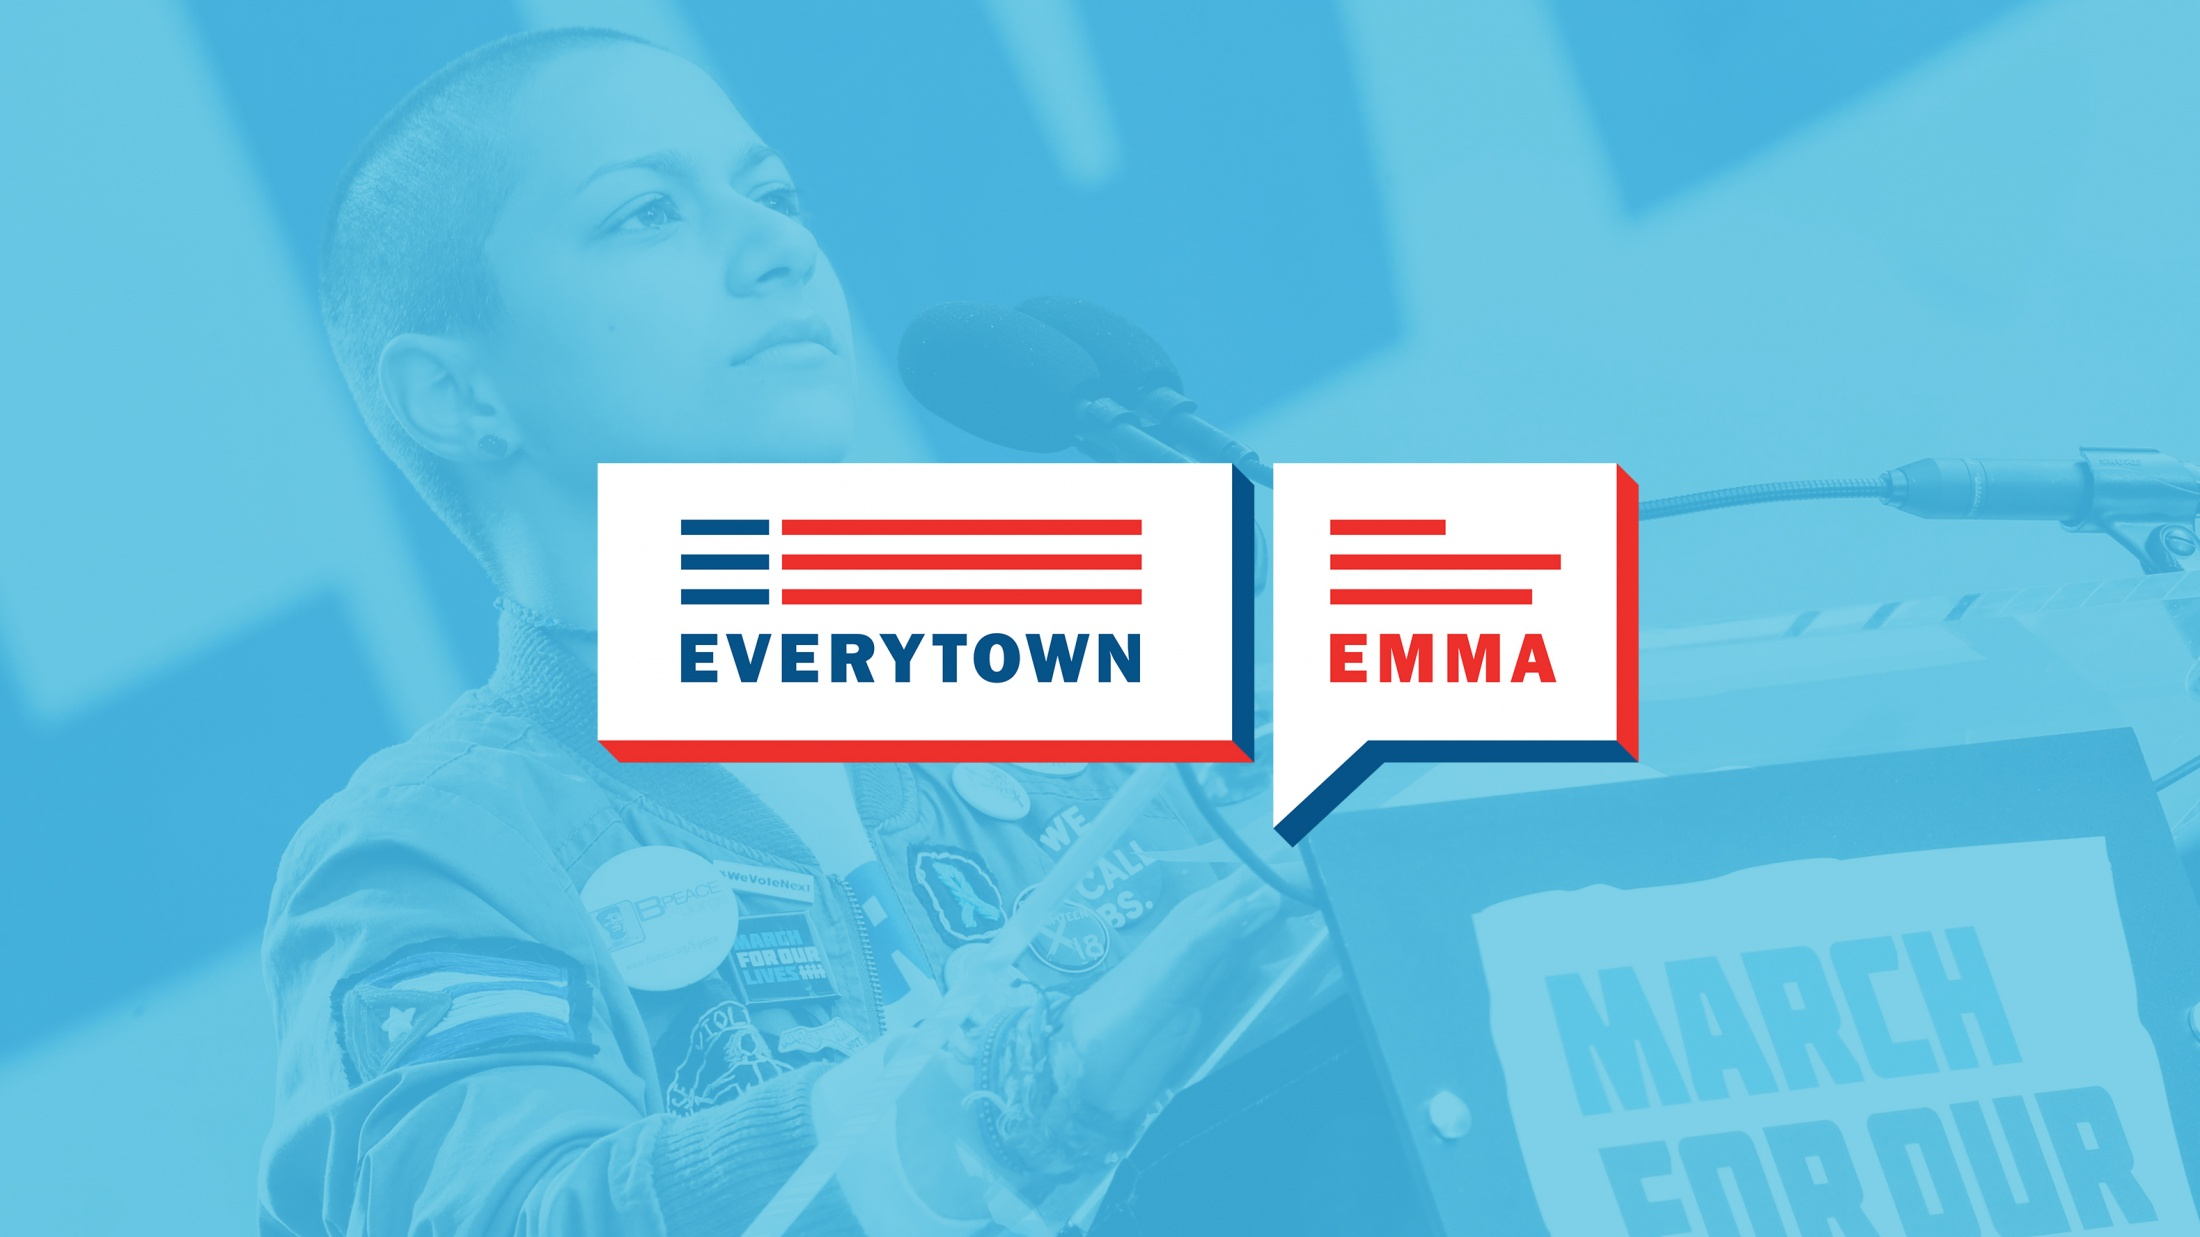 Thumbnail for Everytown Emma